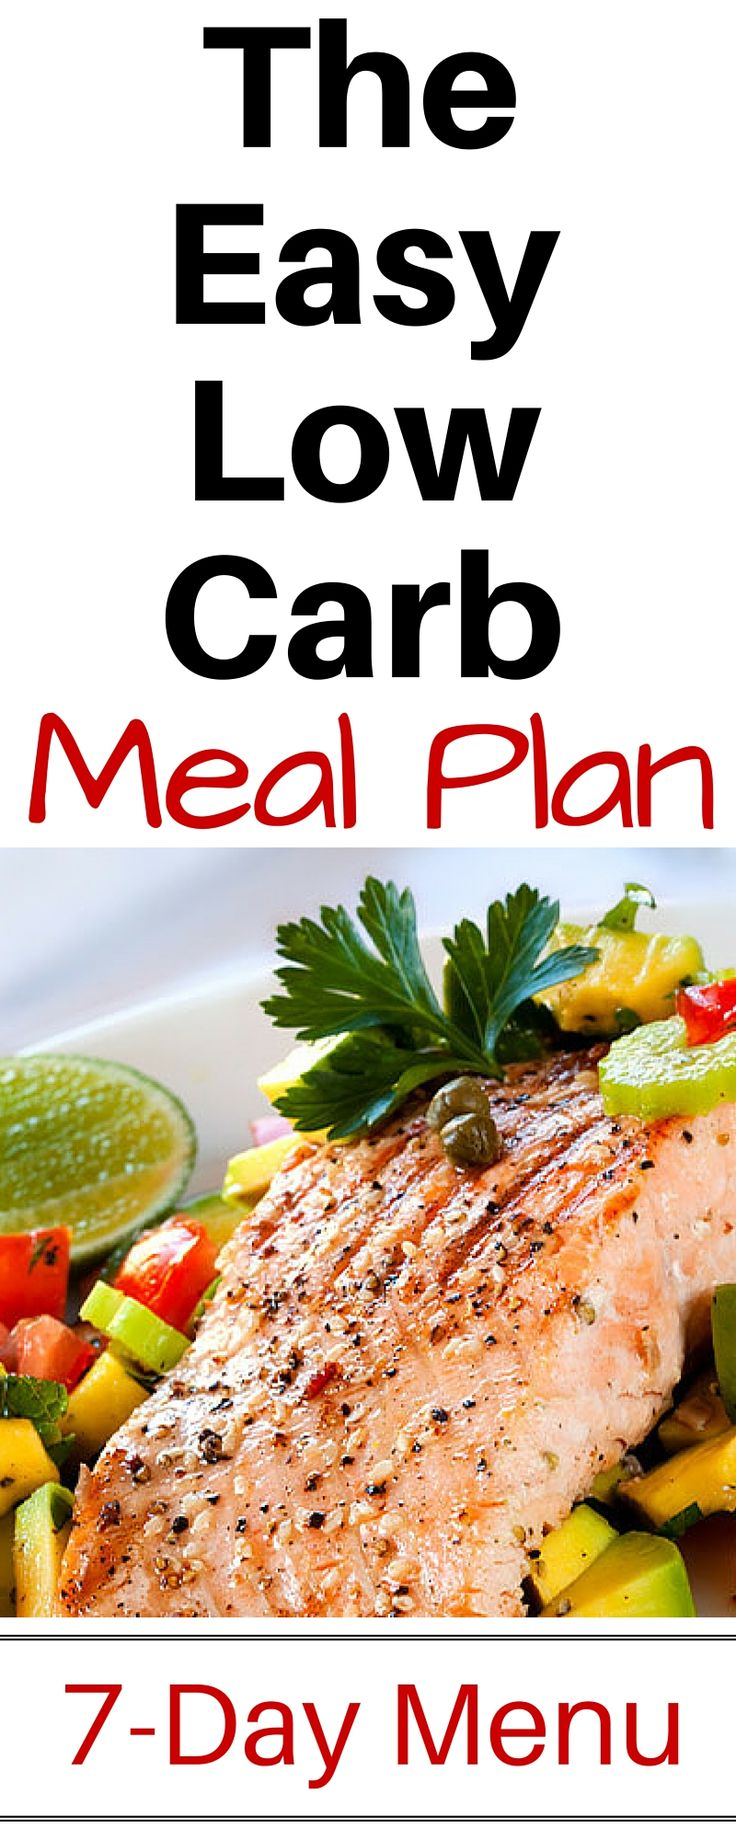 How Can I Lose Weight On A Low Carb Diet